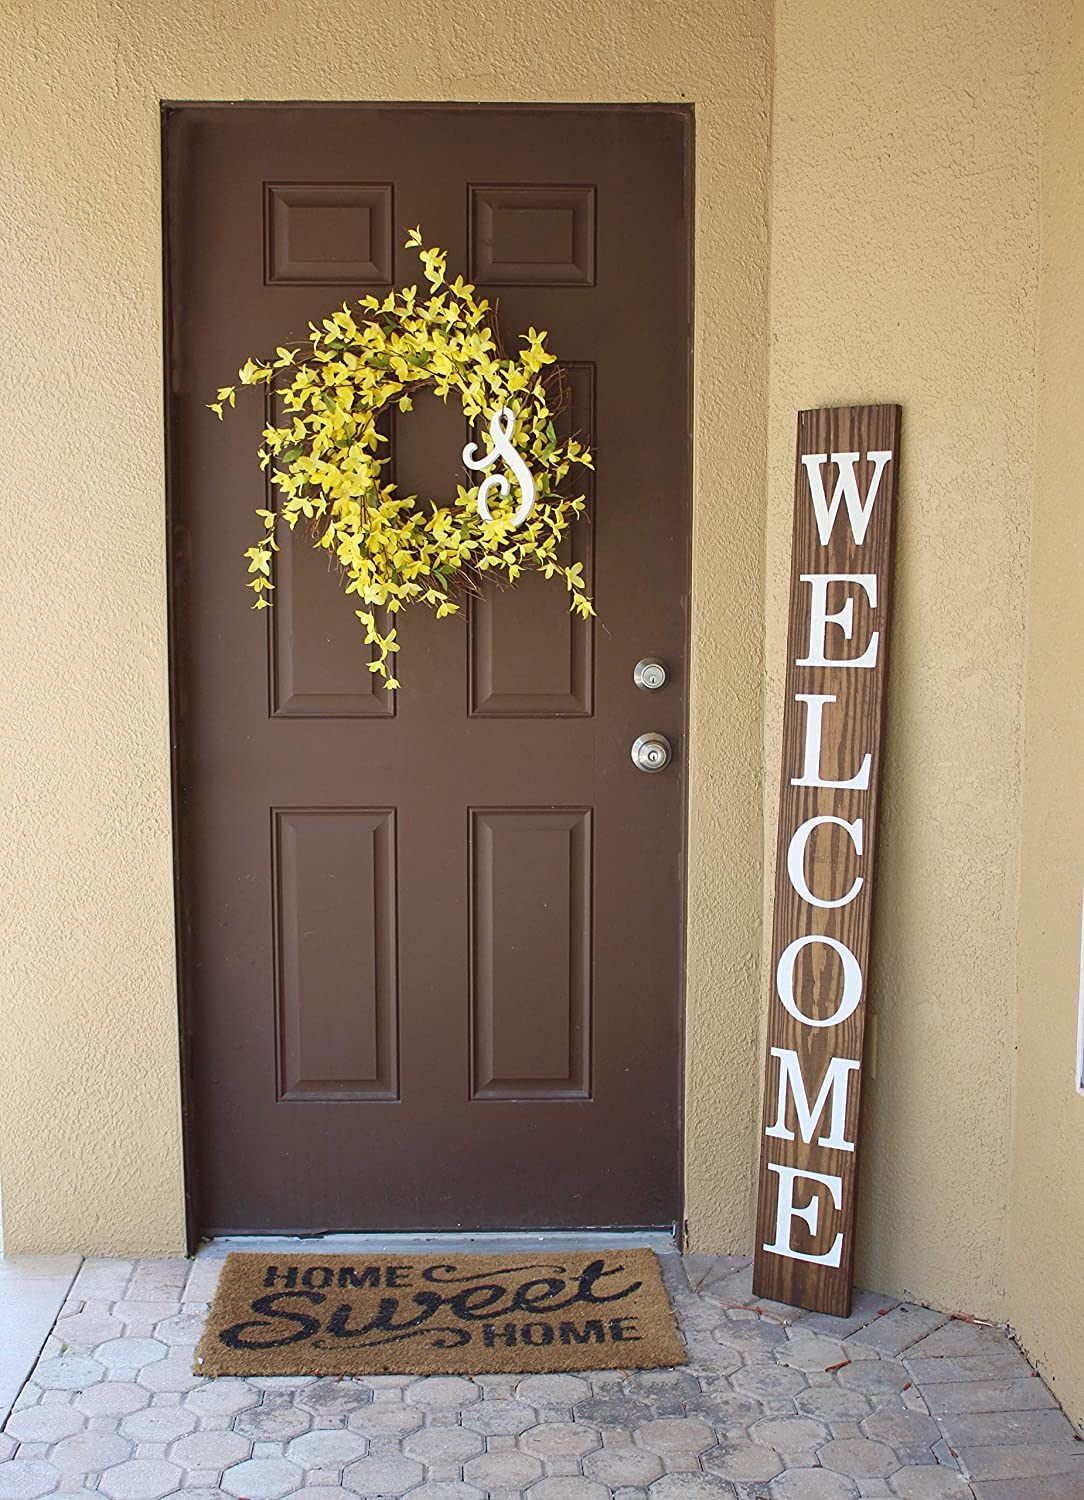 Smithfarmco Welcome Sign For Front Porchfront Door Made With Real Wood 5 Feet Tall Large Rustic Farmhouse Style Farmhouse Distressed